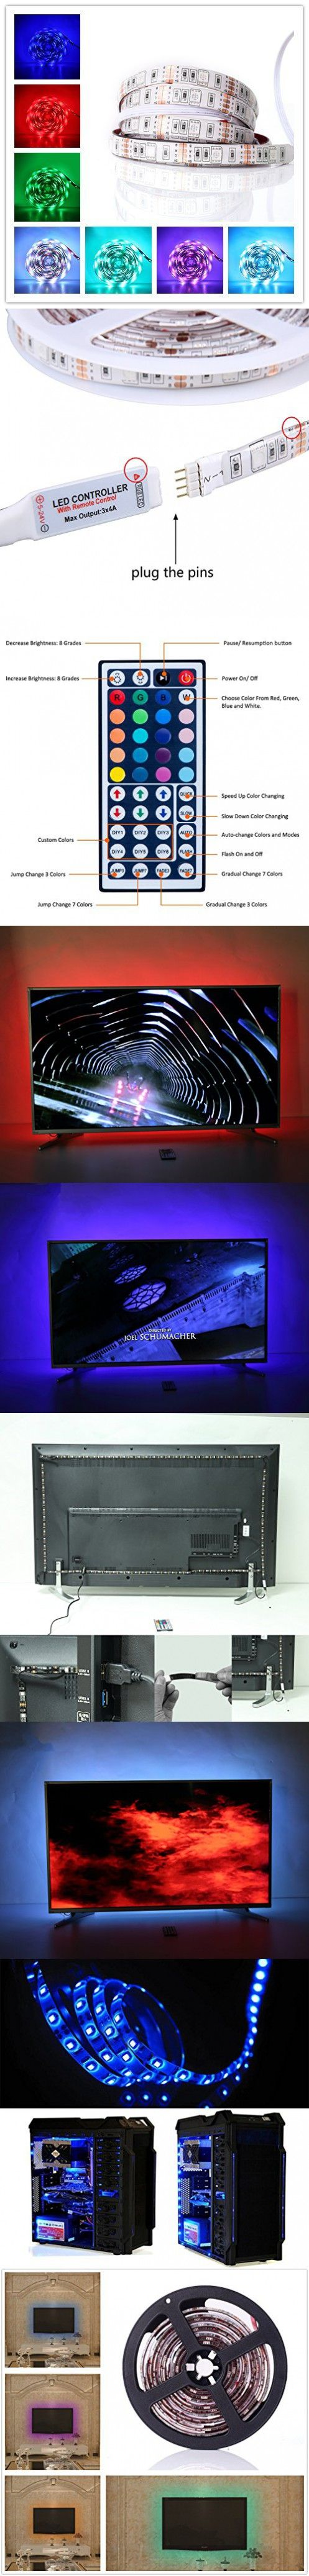 ALight House LED TV Backlight Kit 5050 USB RGB Multicolor Waterproof Backlight Strip Lighting with 44-key Remote Controller for 32~70in HDTV PC Monitor Home Theater Decoration